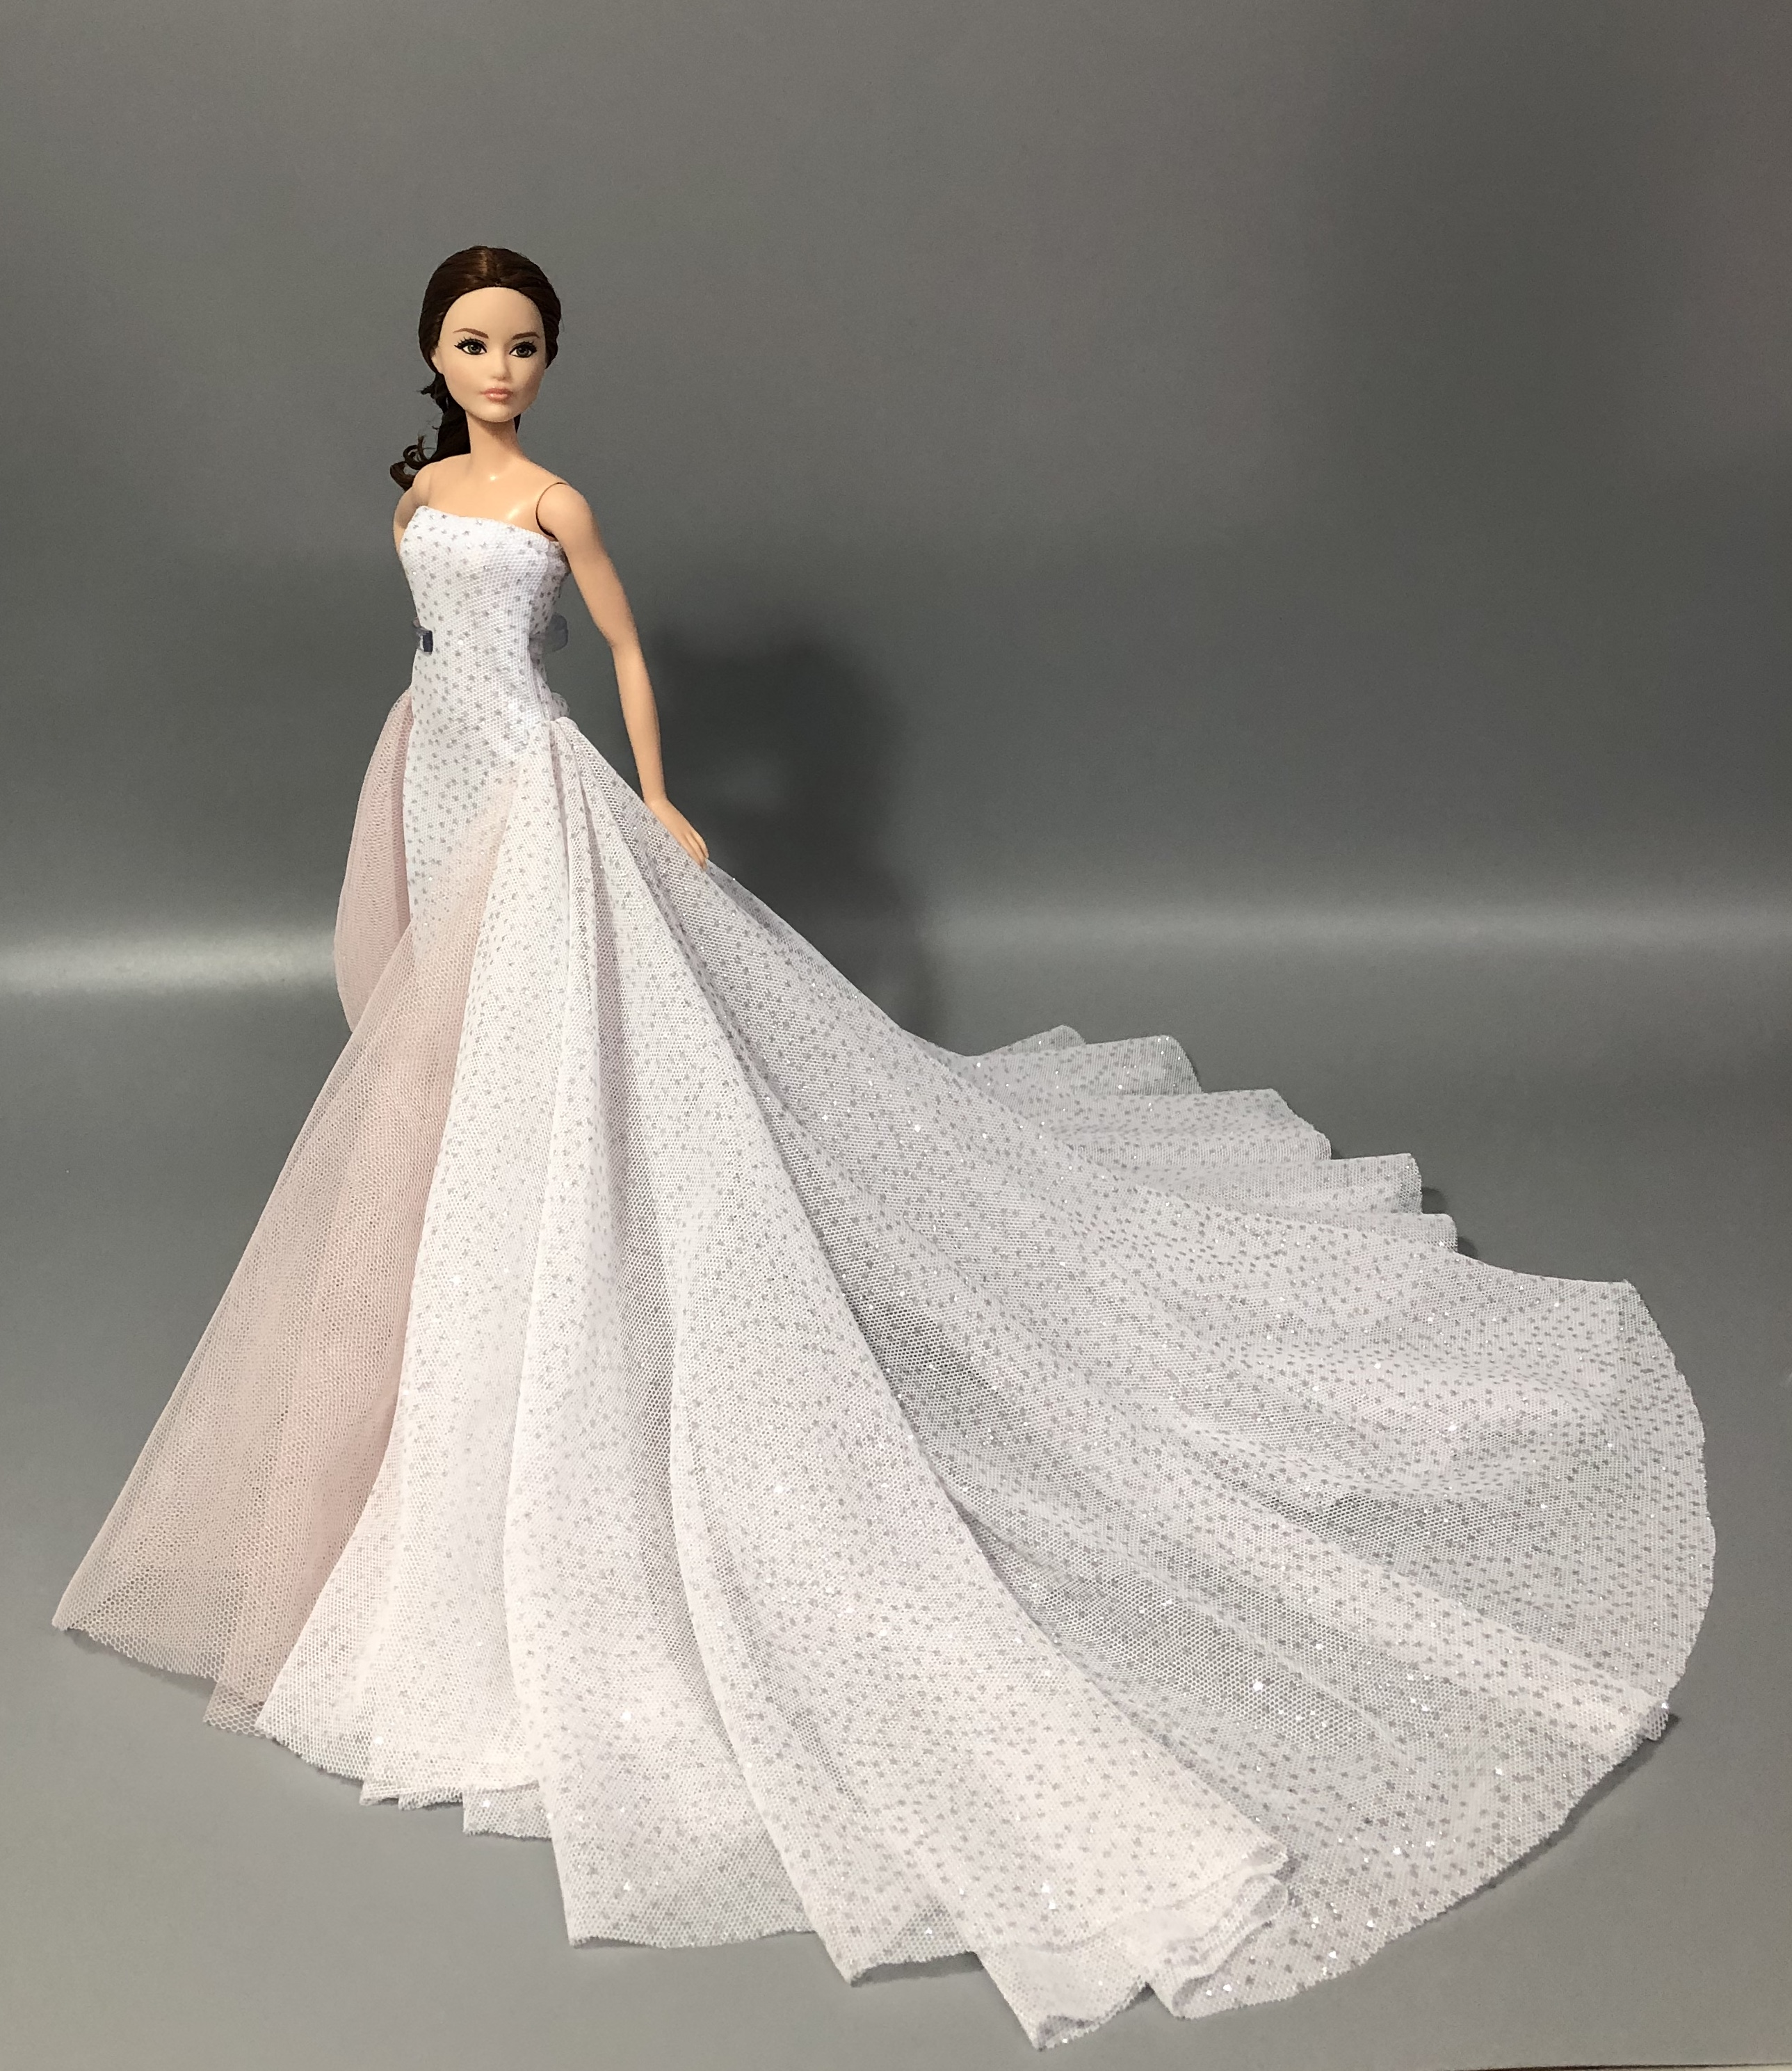 52e1320c284 The original case for barbie doll barbie doll clothes wedding dress quality  goods fashion skirt dress With much money